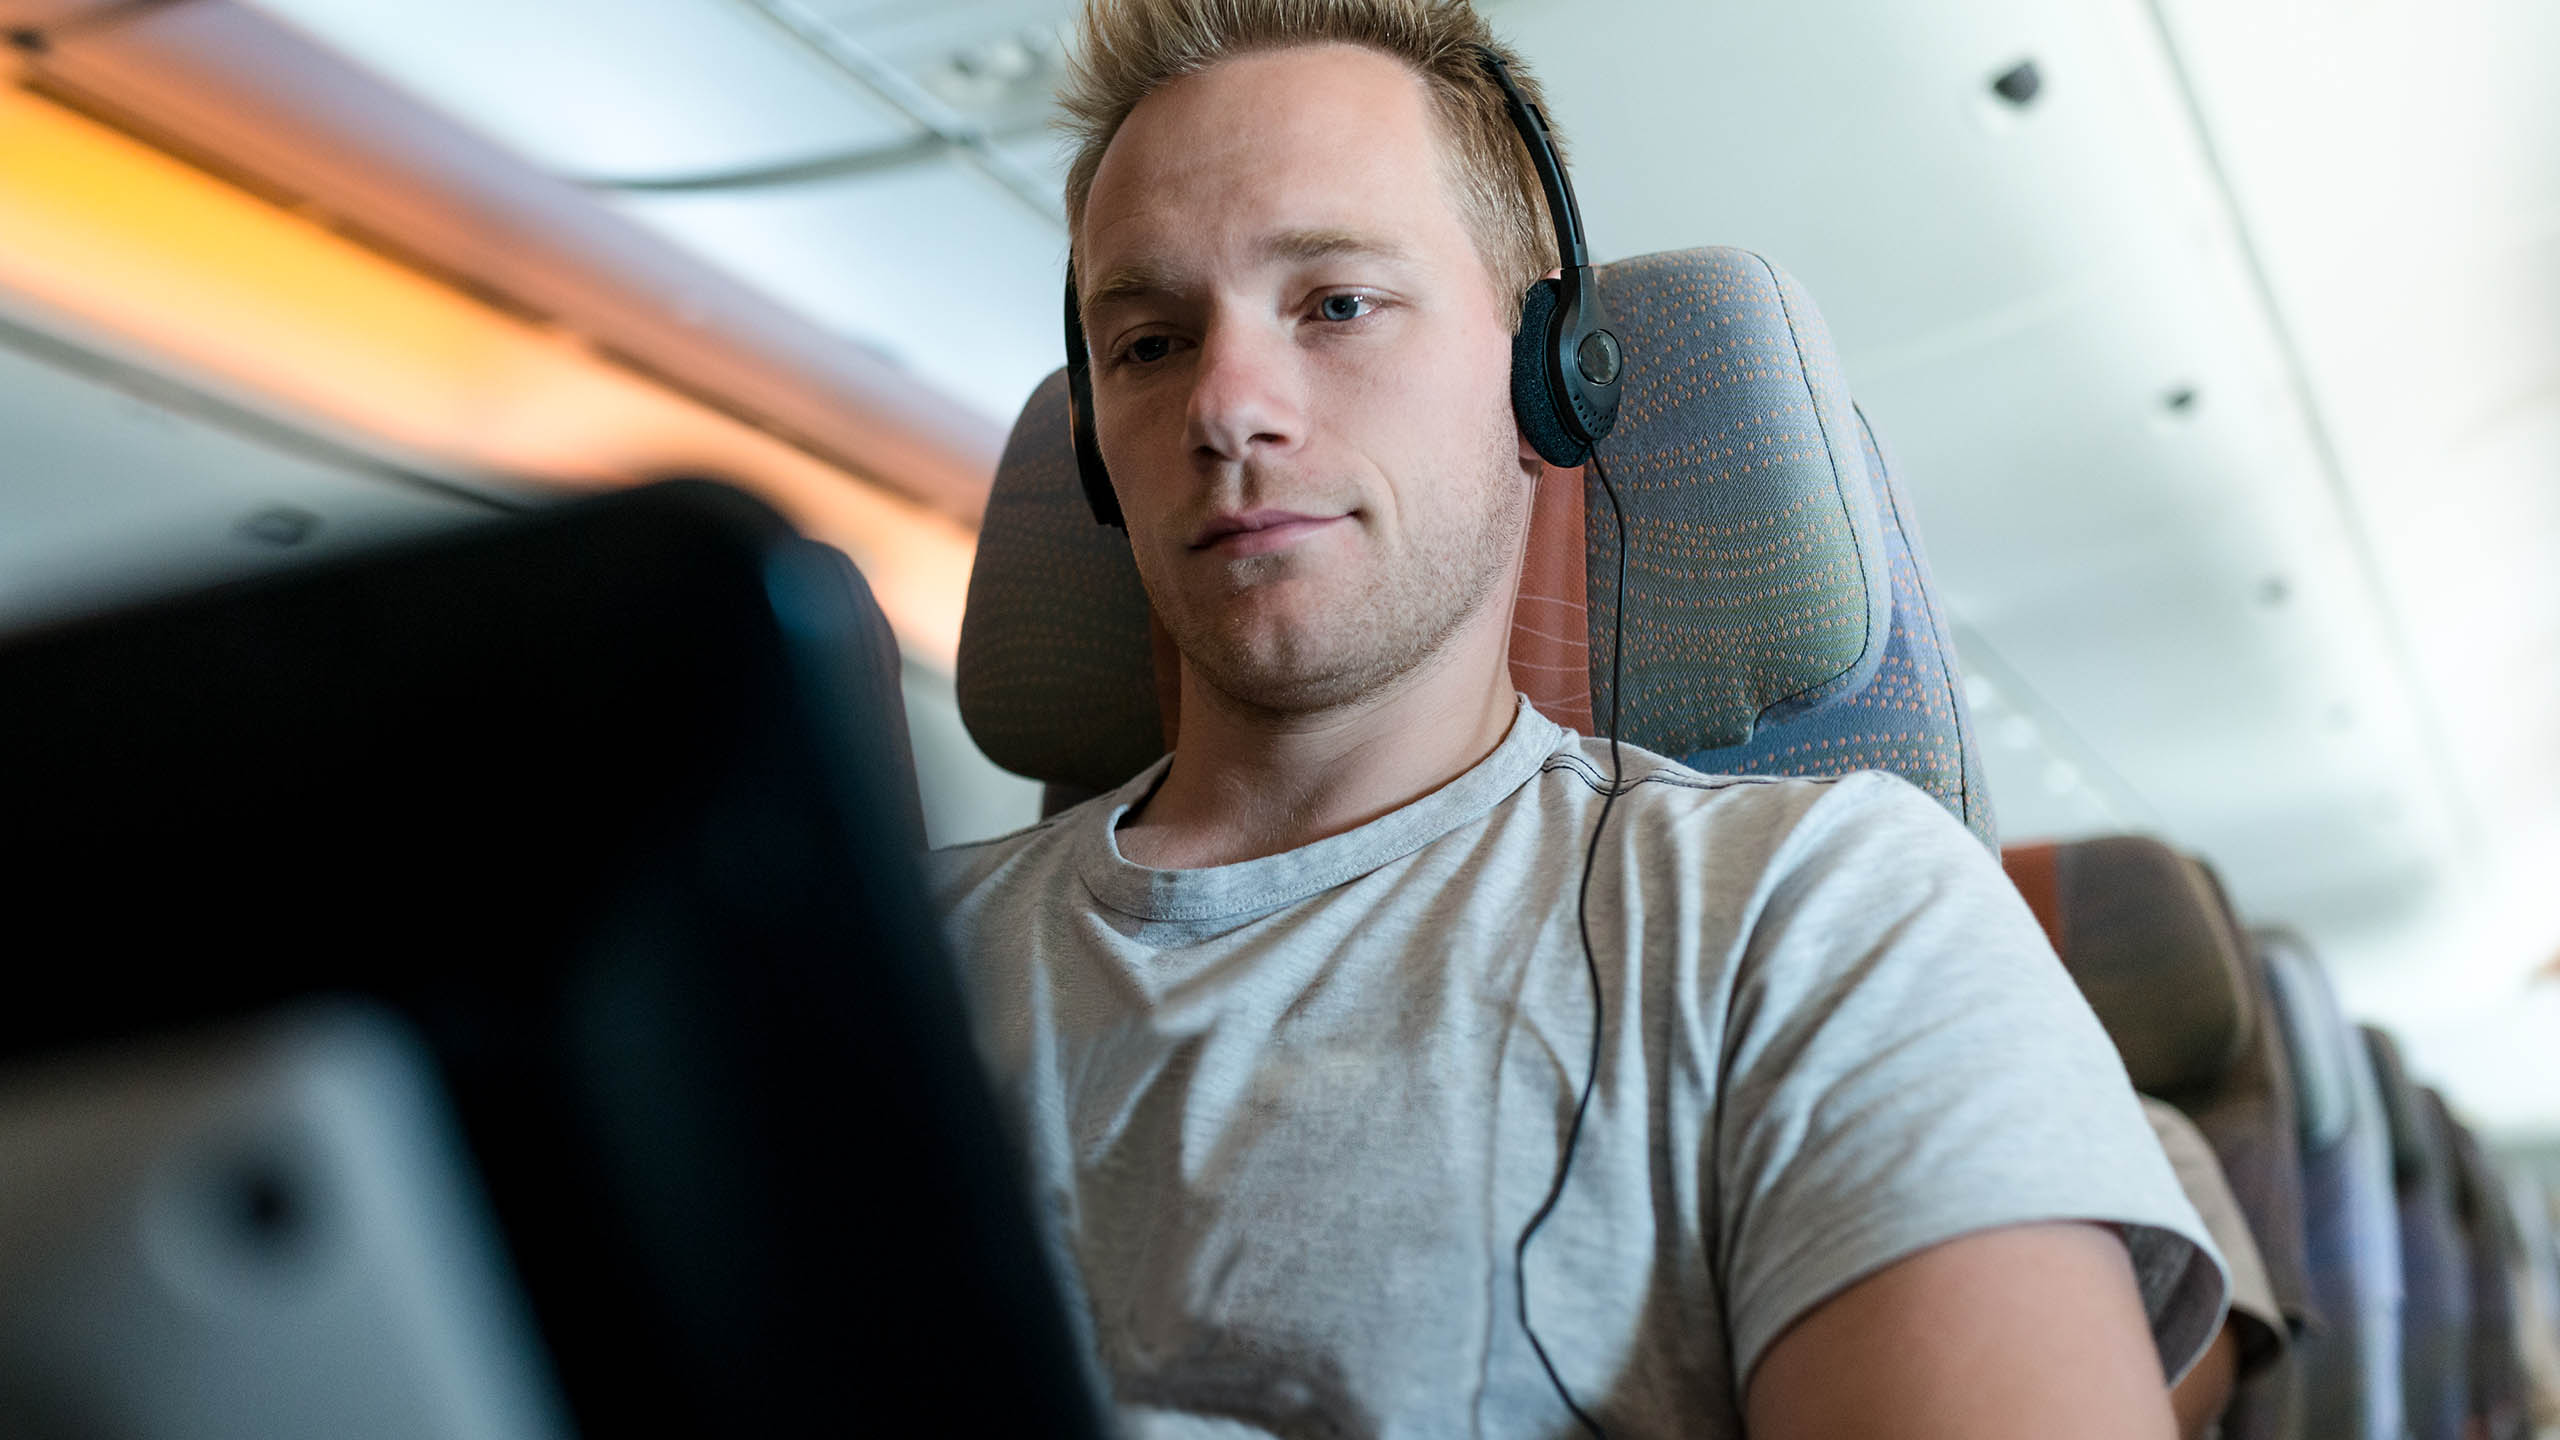 Work From Anywhere: Why Airlines Are Uniquely Positioned to Enable Digital Nomads